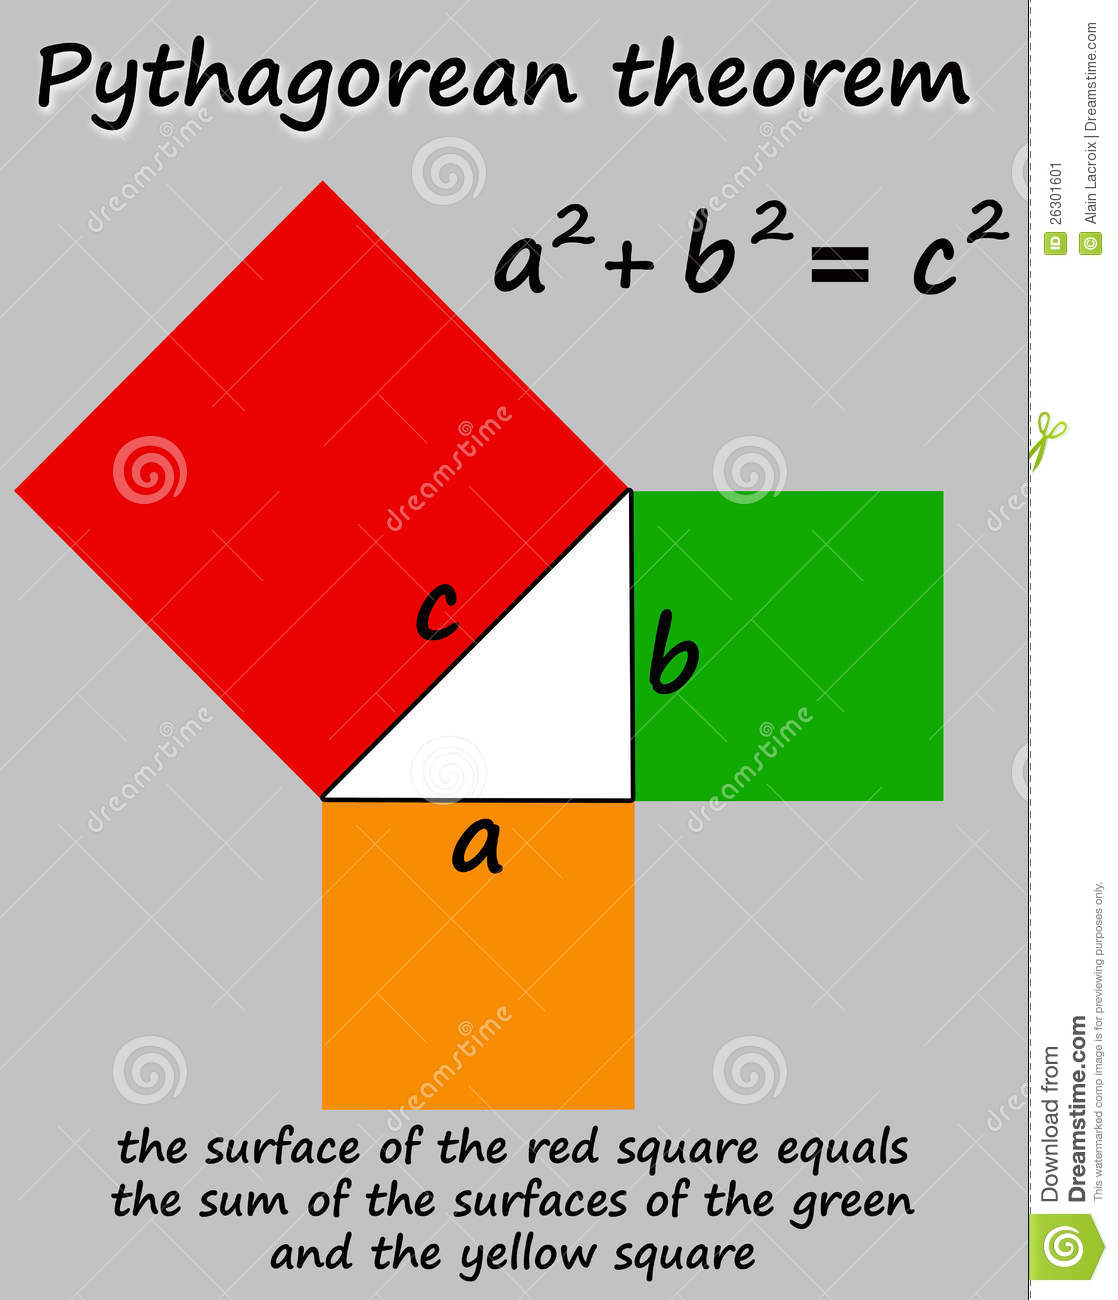 trigonometry mathematics and theorem pythagorean theorem Pythagoras was born in samos, greece around 570 bce - math pythagorean theorem essay introduction from there he emigrated to croton, italy where most of his most important ideas and theories would develop.